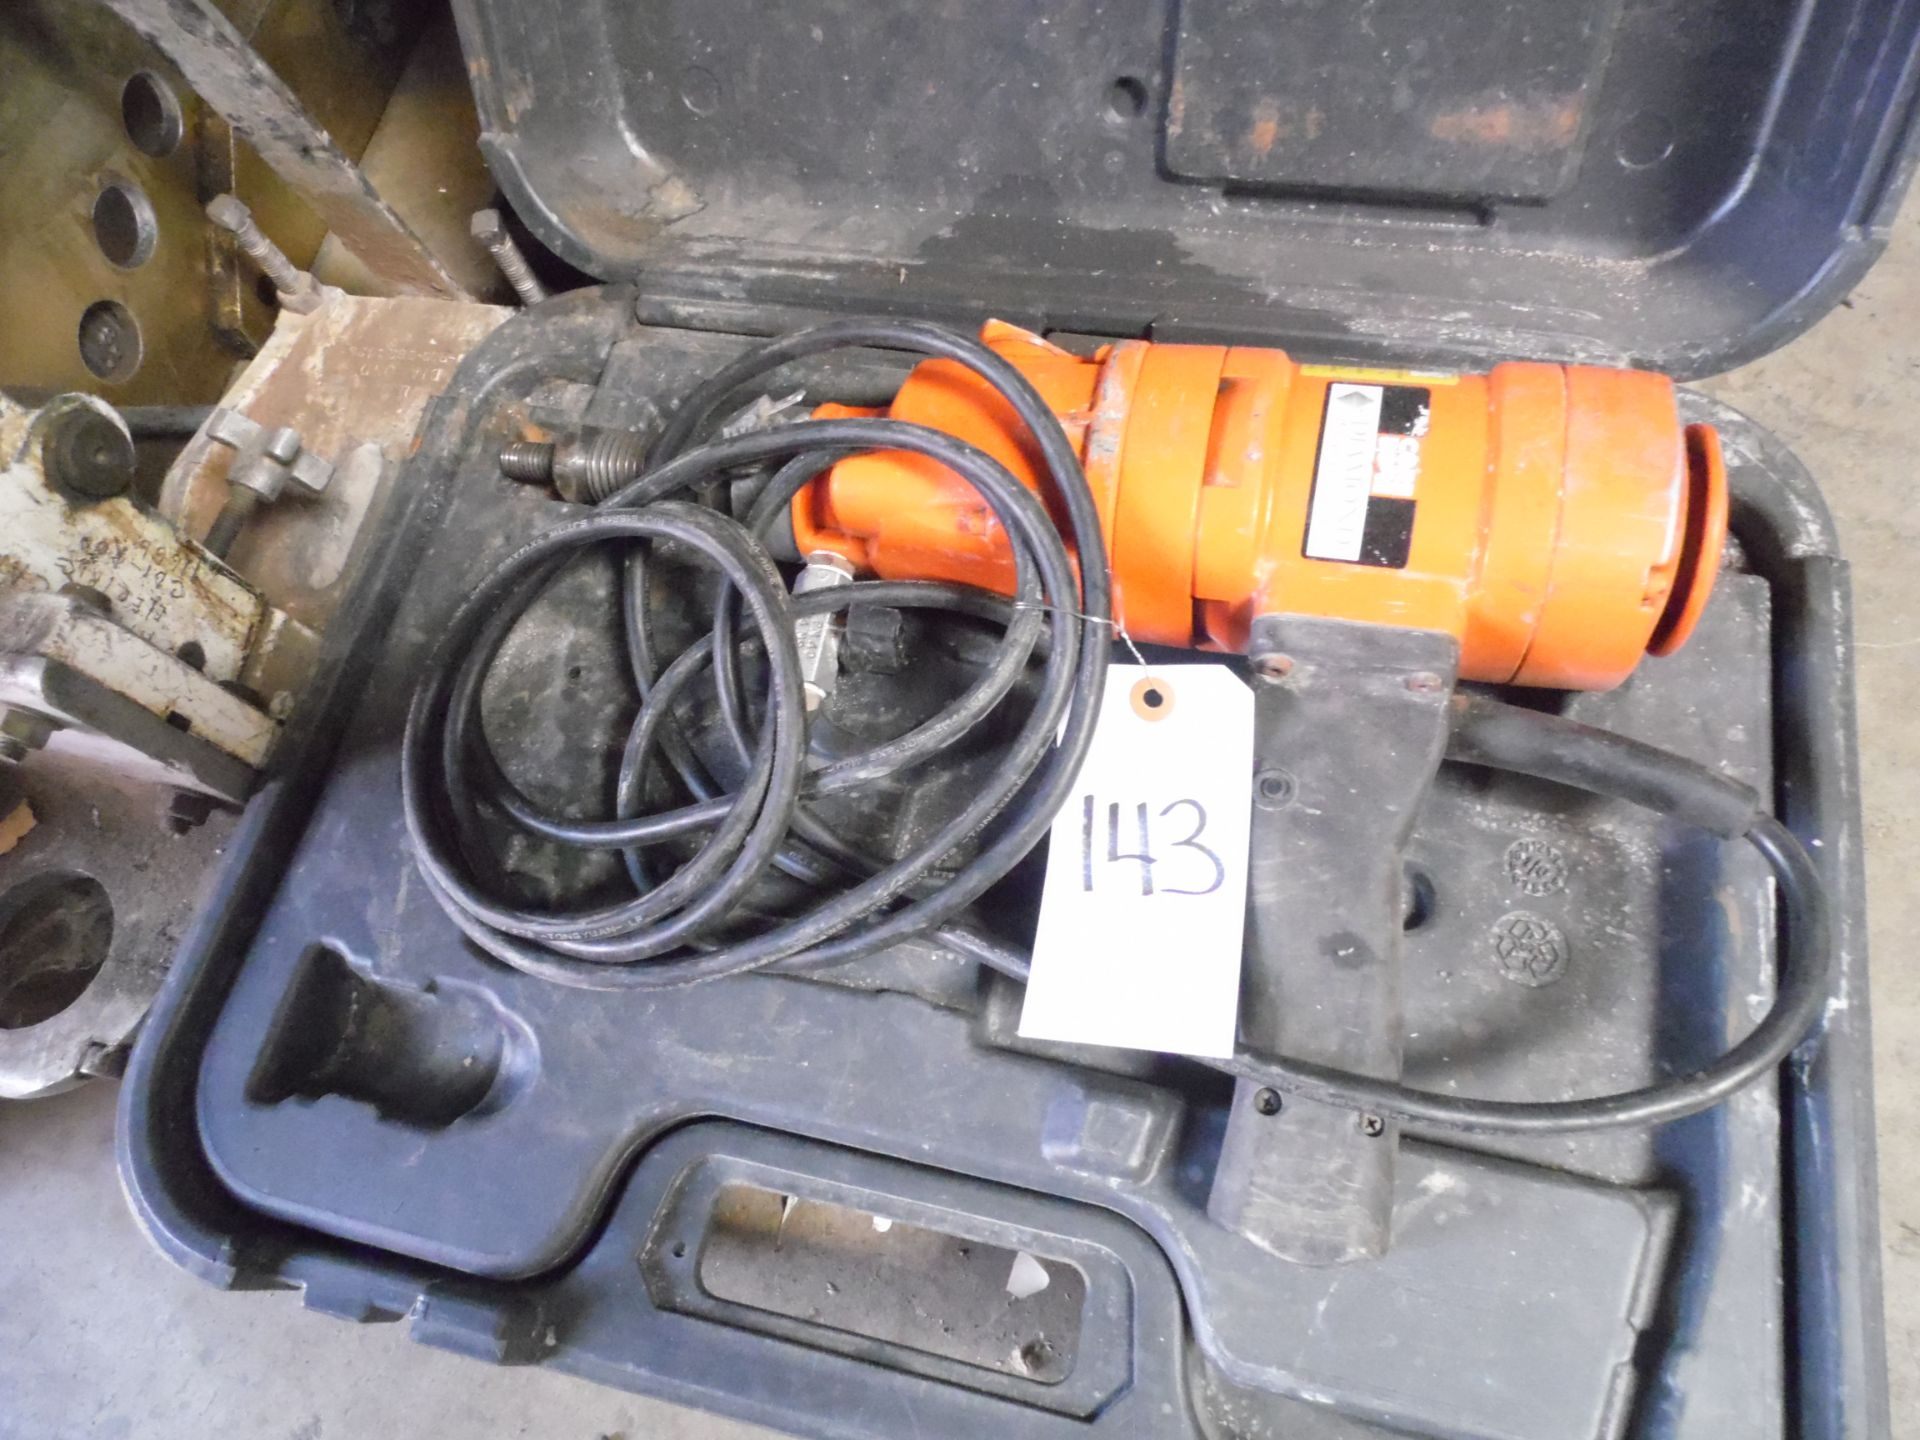 Lot 143 - MAGNETIC CORE DRILL w/ STAND